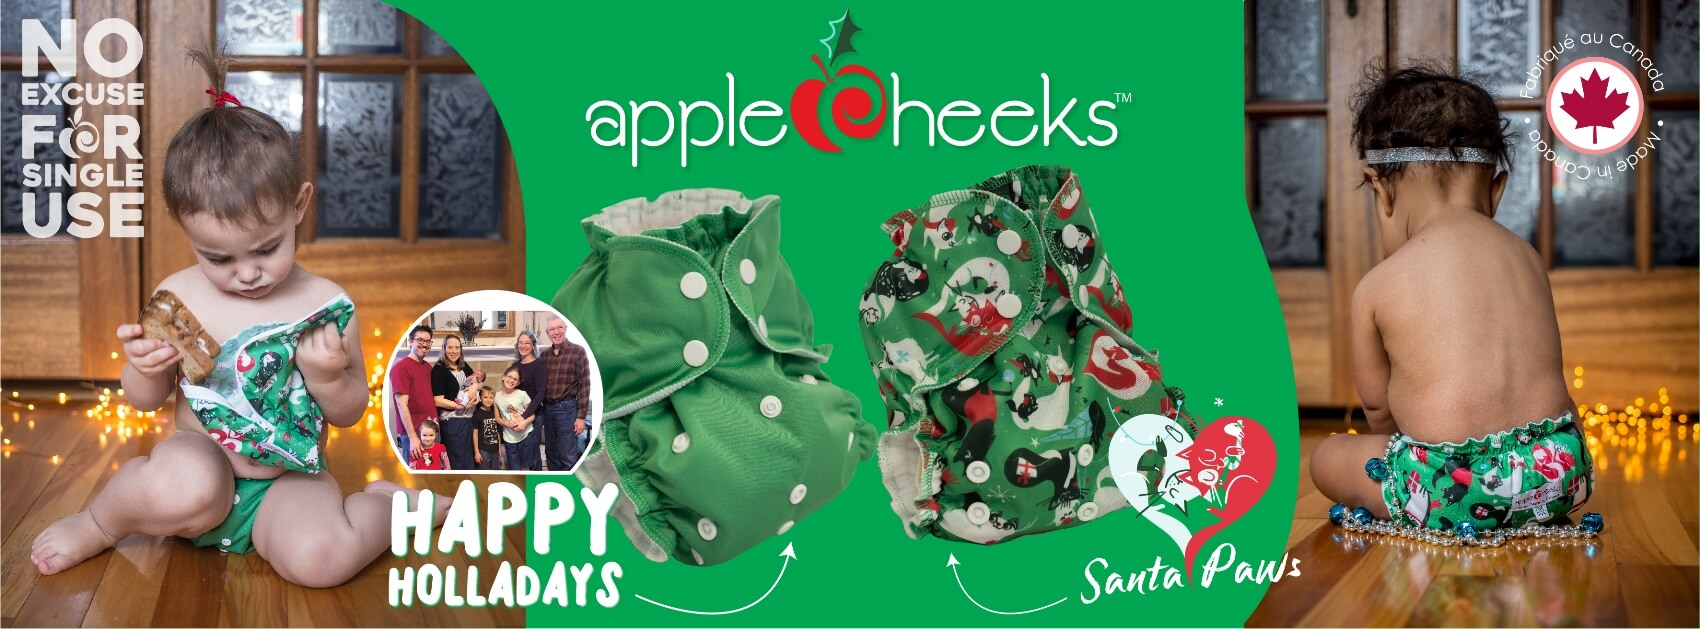 applecheeks cloth diapers Canada - christmas solds and santa paws